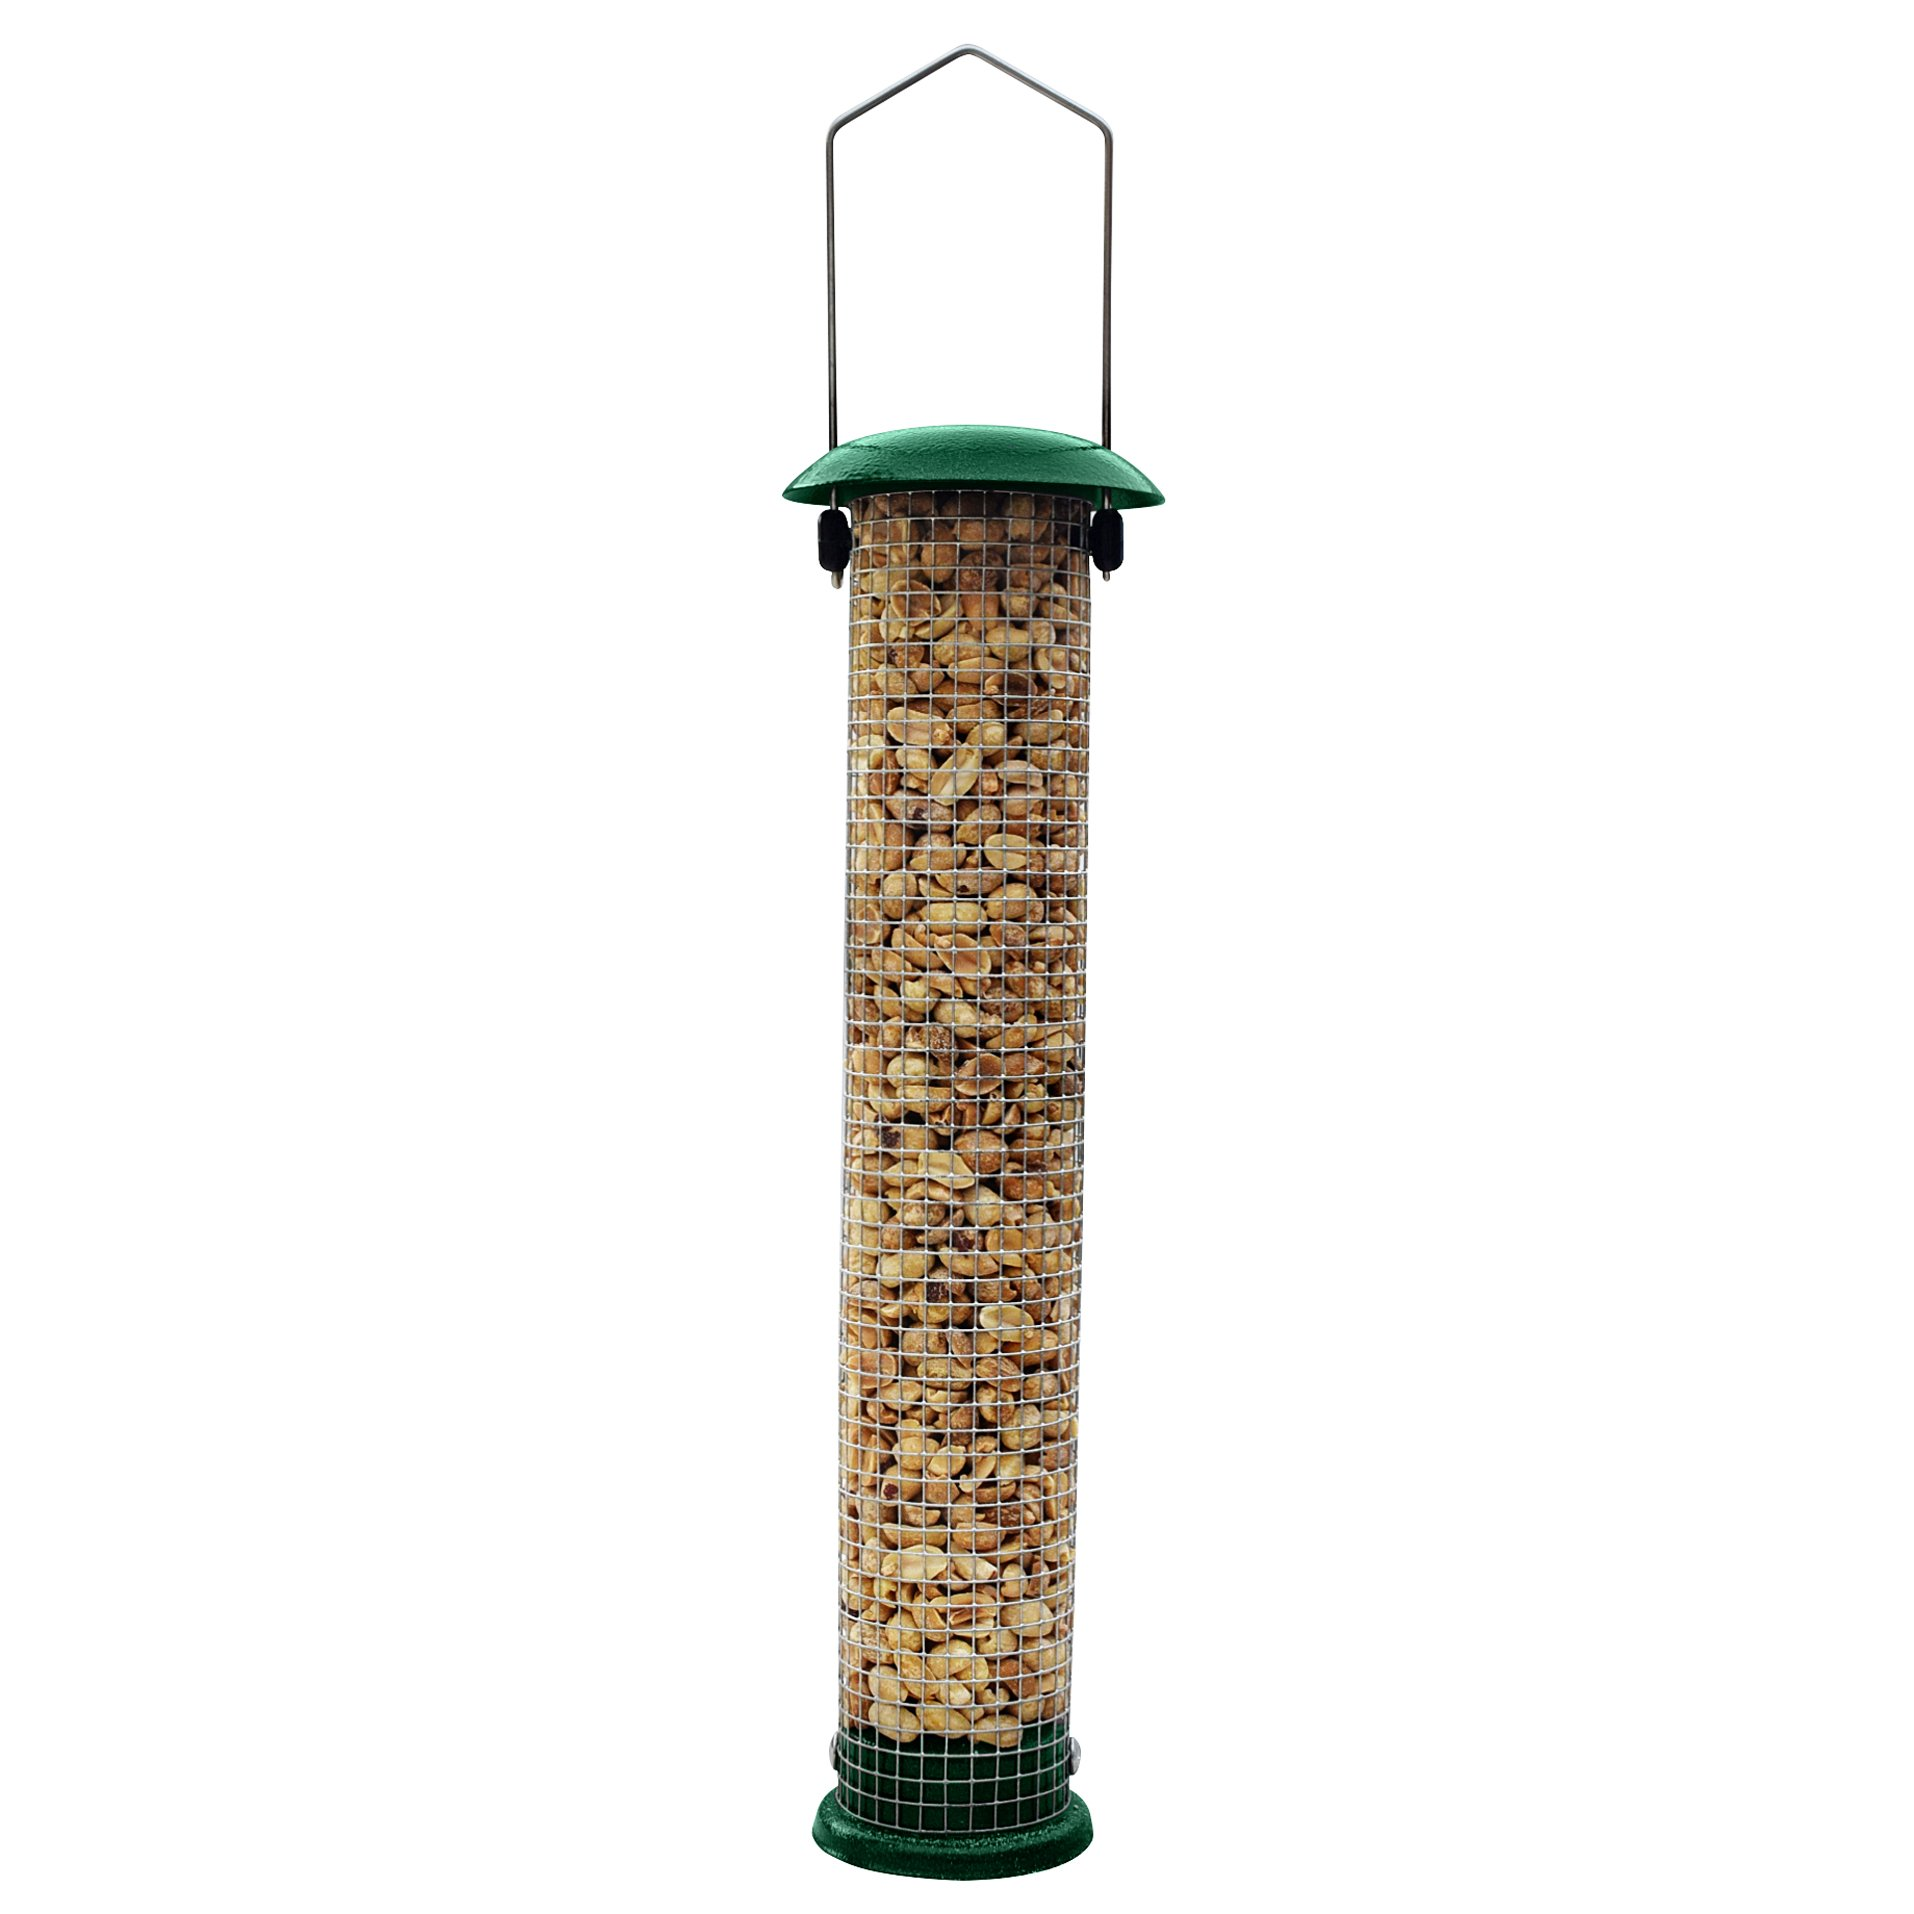 GrayBunny GB-6857 Premium Steel Sunflower Seed Feeder and Peanut Feeder, 15'' Tall, Wild Bird Feeder for Woodpeckers, Titmice, Nuthatches, Chickadees, Jays and More!